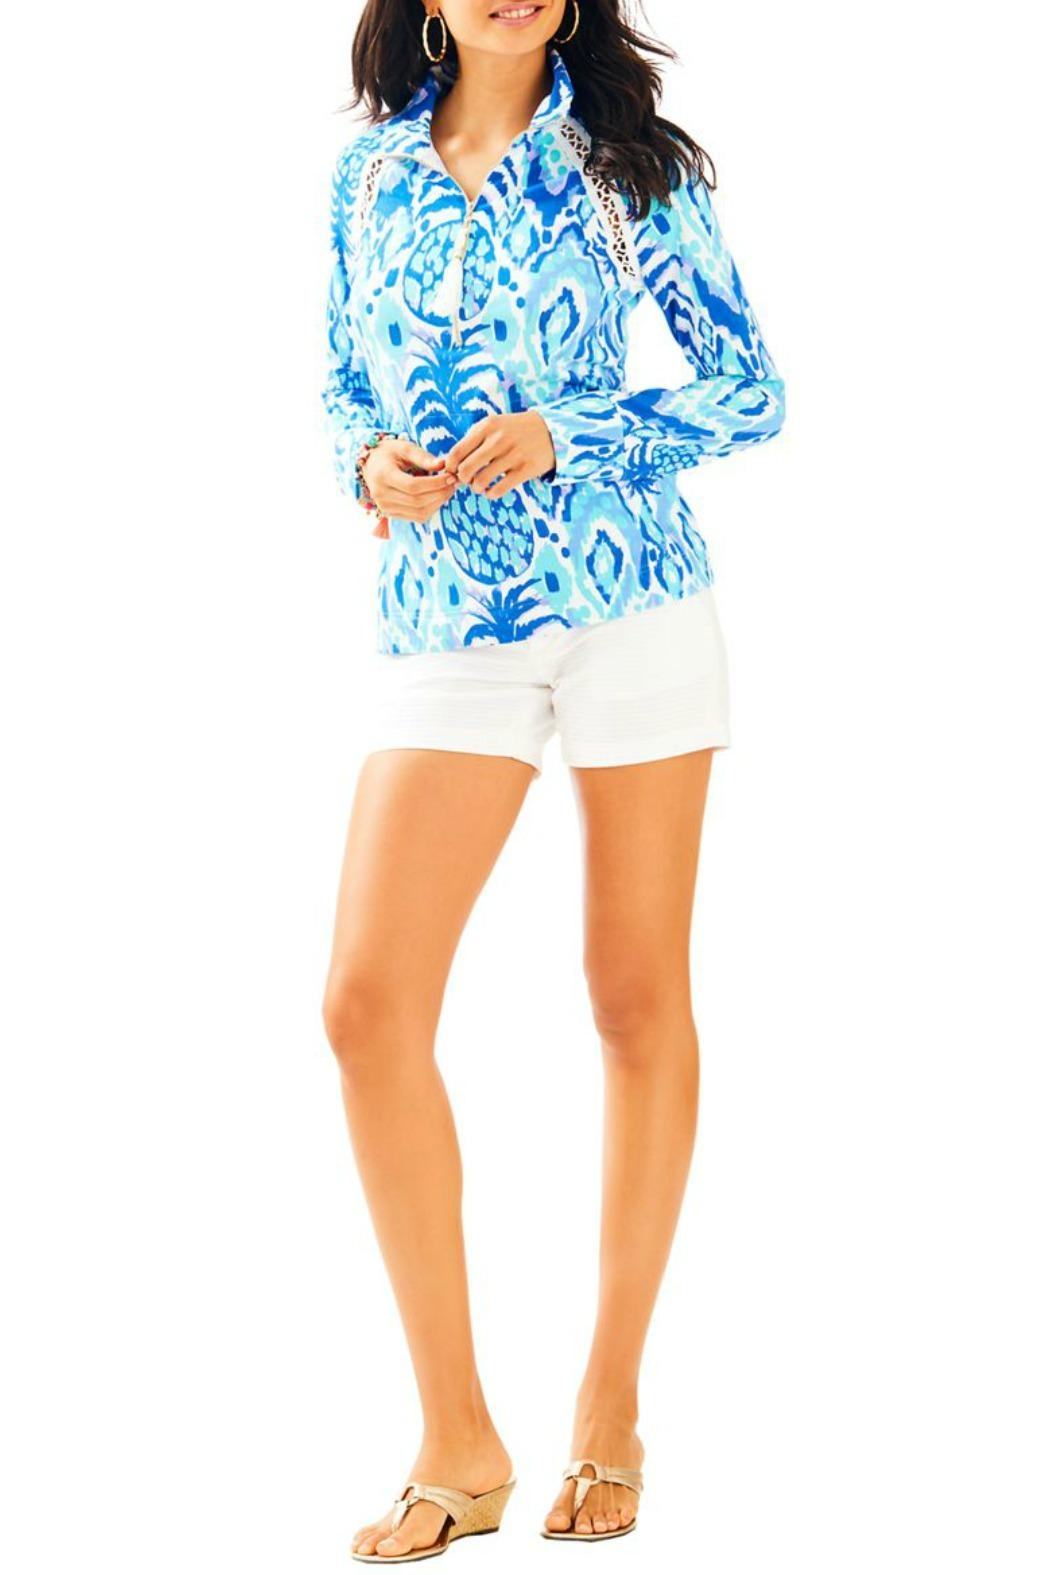 Lilly Pulitzer Skipper Printed Popover Top - Main Image